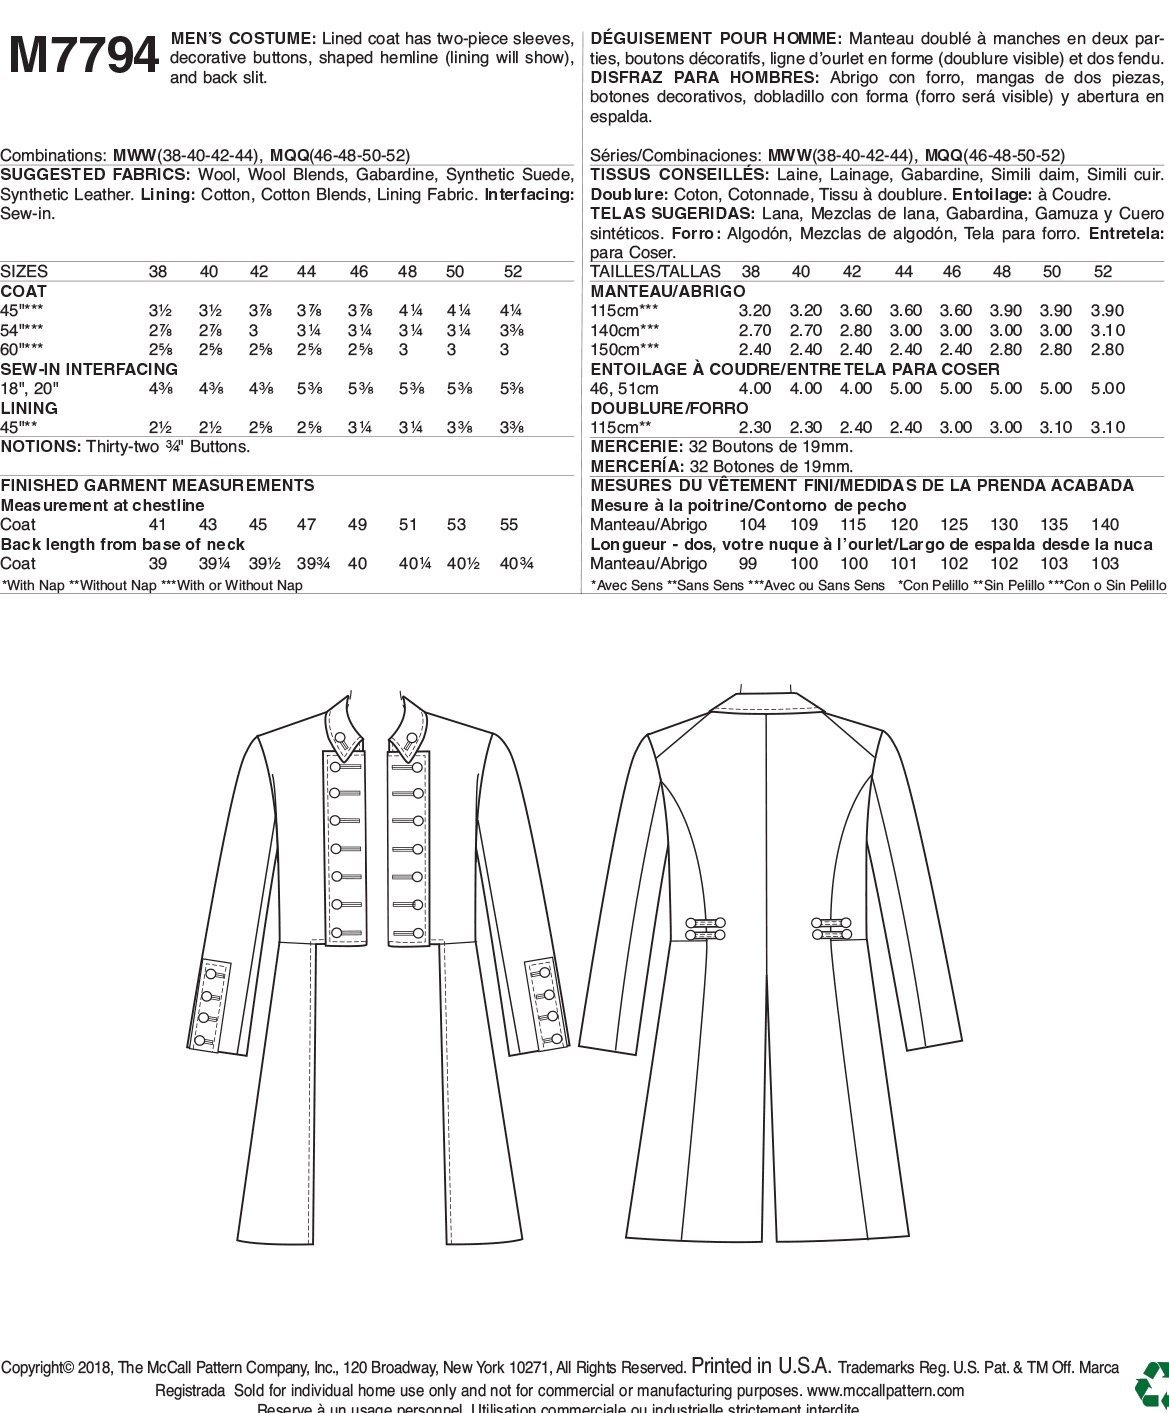 Amazon.com: McCalls Patterns M7794 Mens Costume Sewing Pattern, Multicolor: Arts, Crafts & Sewing